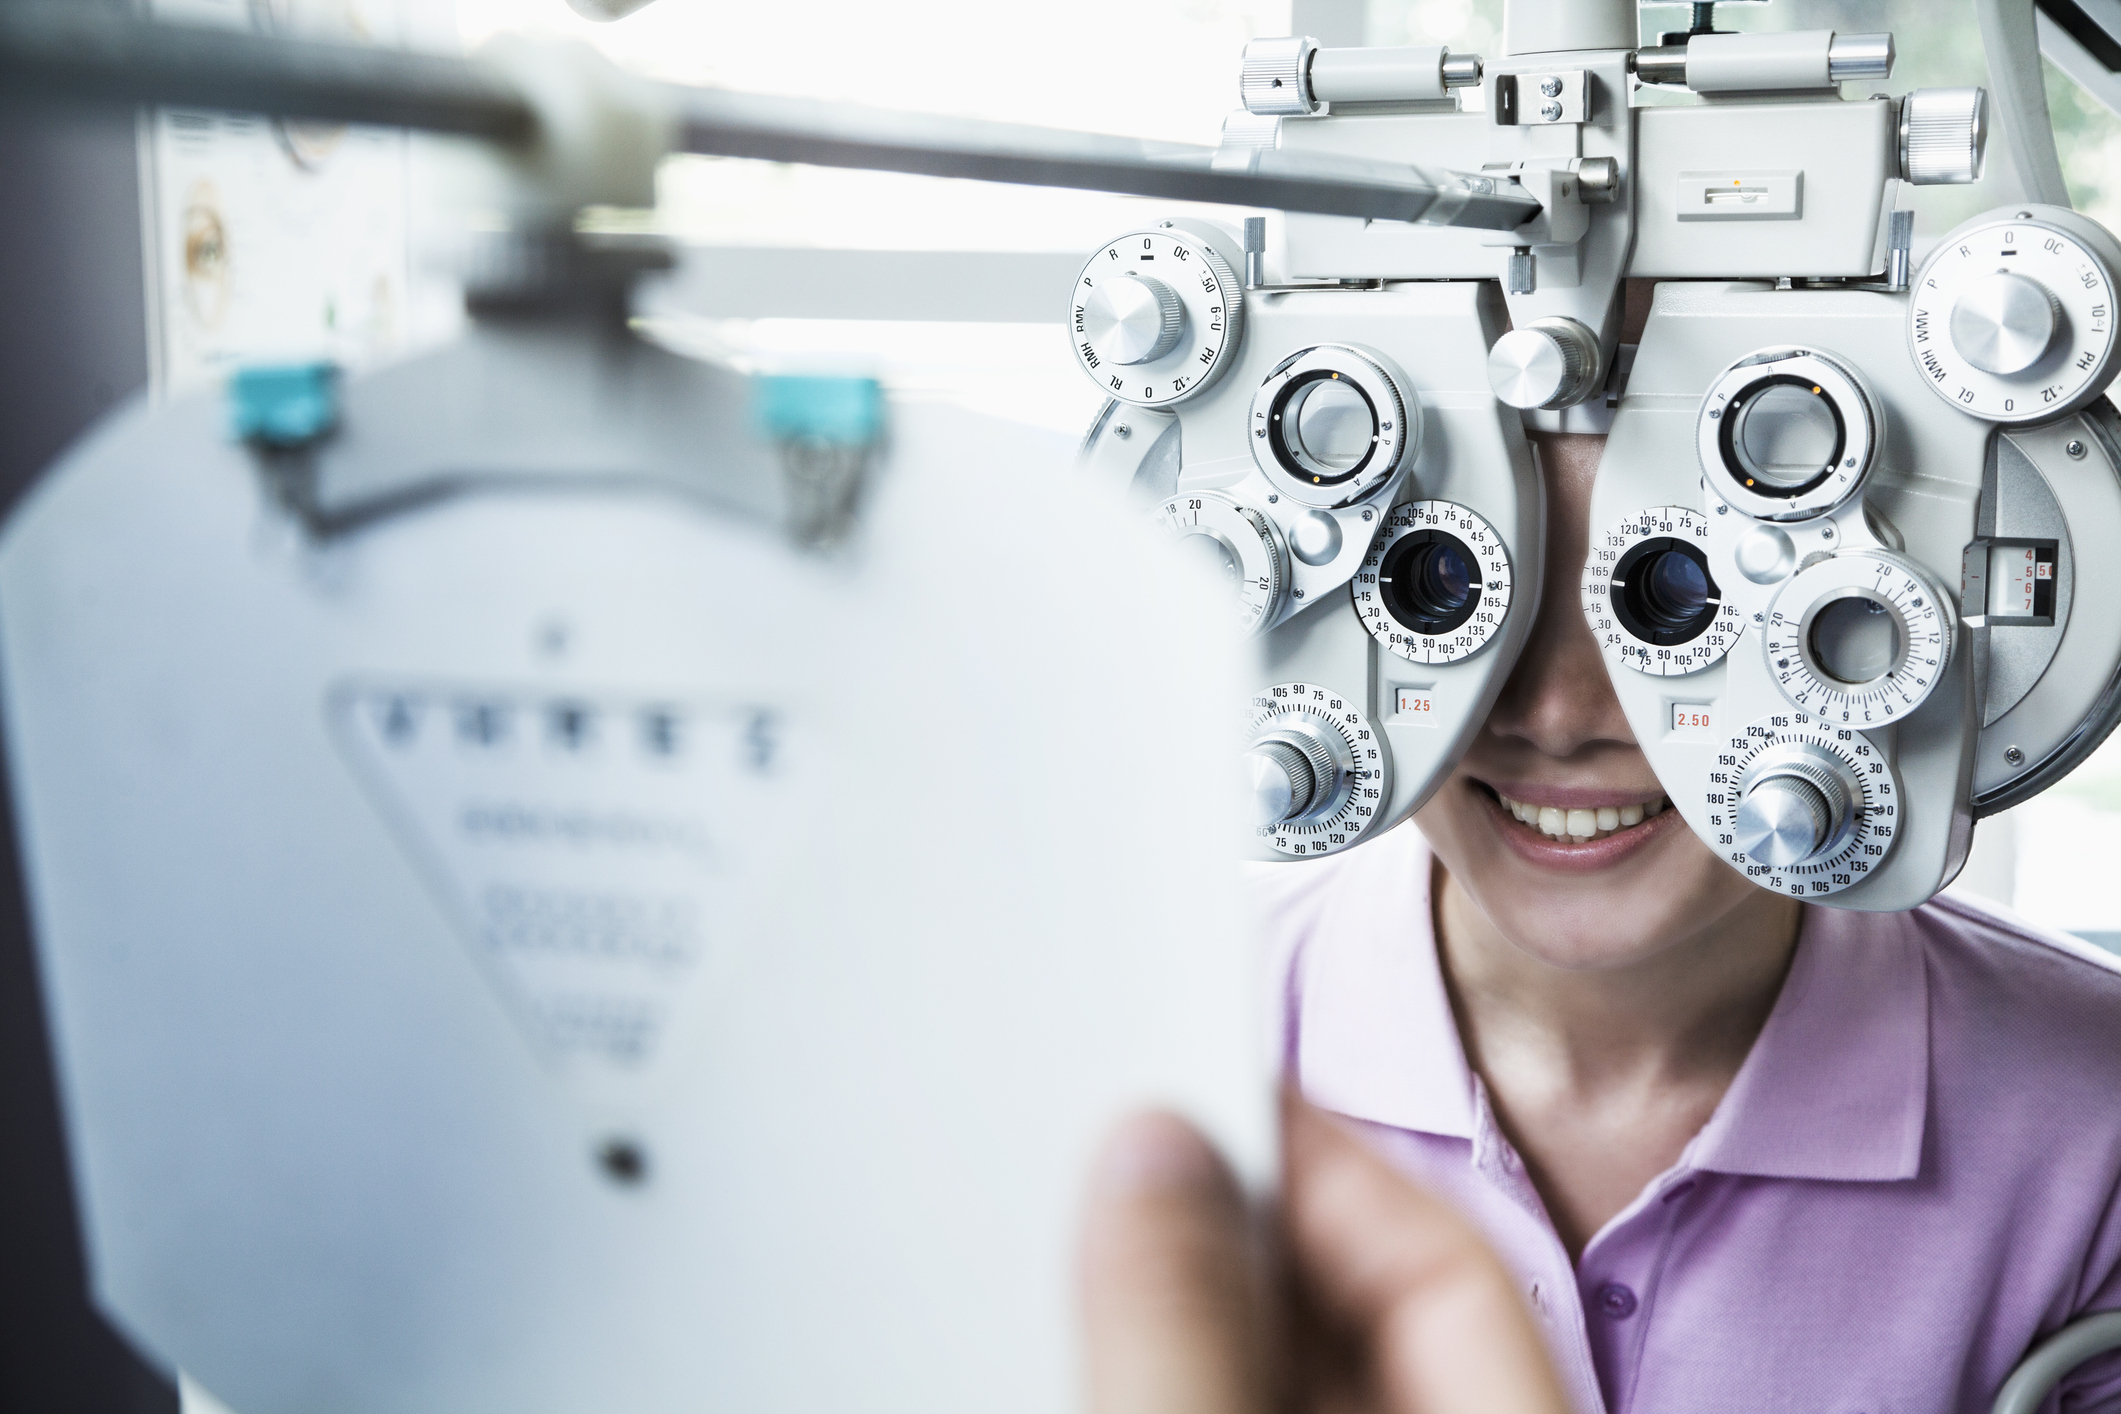 Checking the glasses prescription with an eye exam